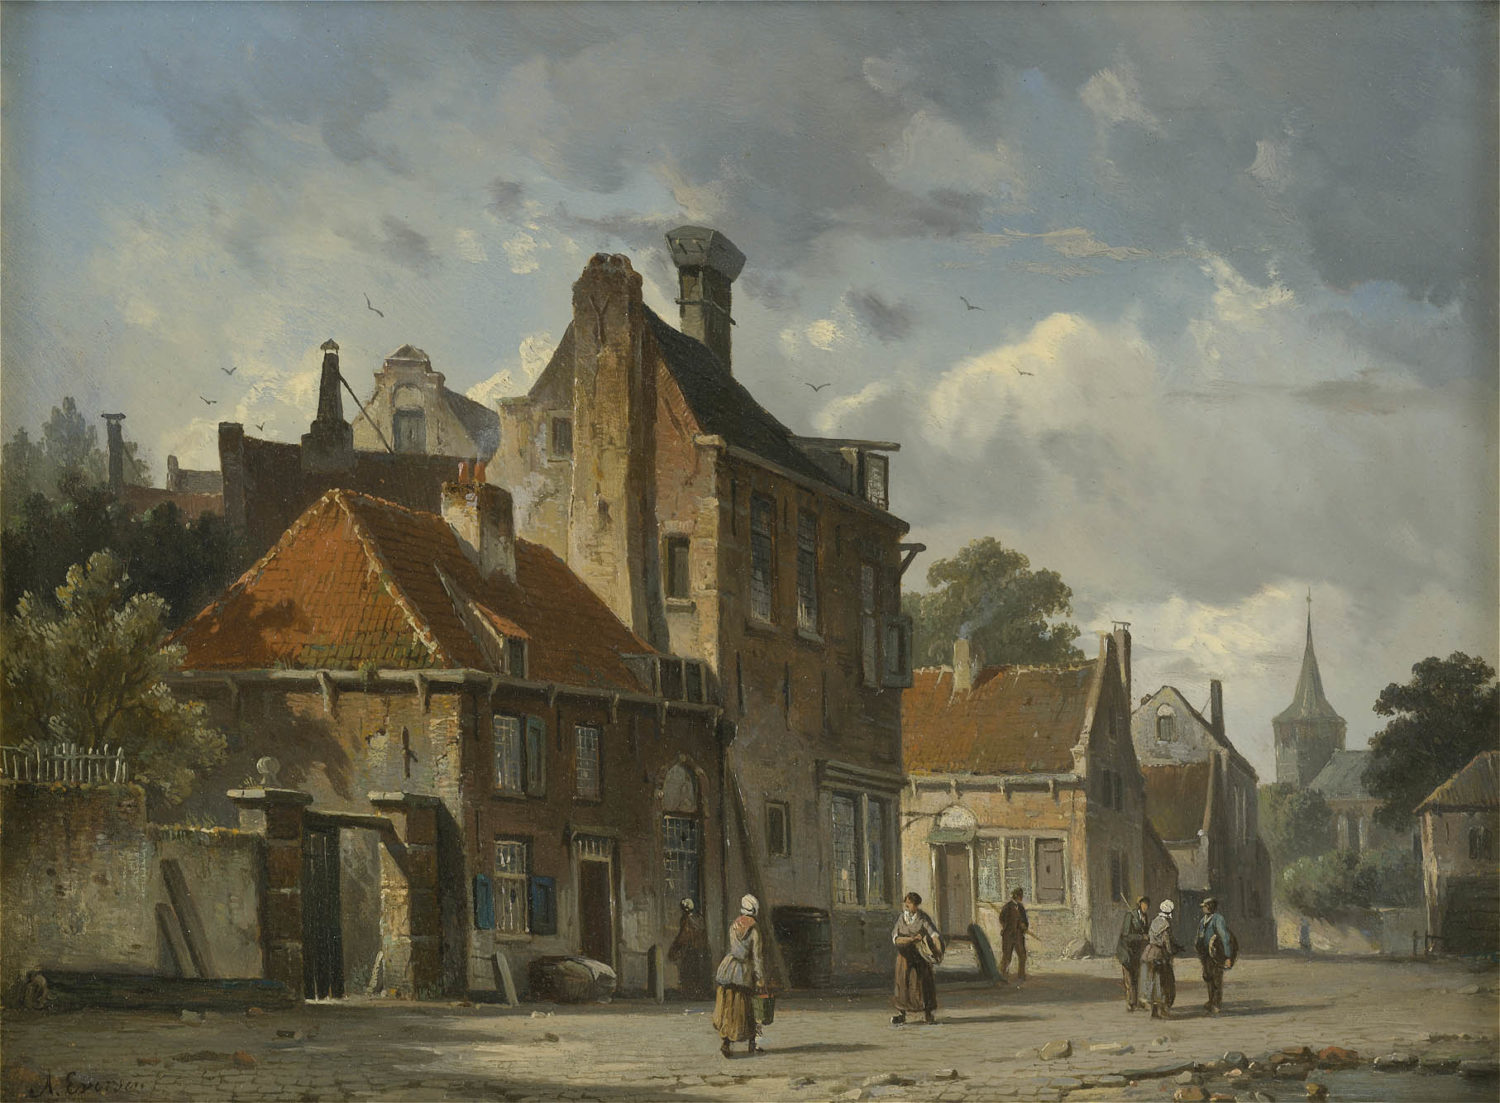 Adrianus Eversen | A town view with figures | Kunsthandel Bies | Bies Gallery